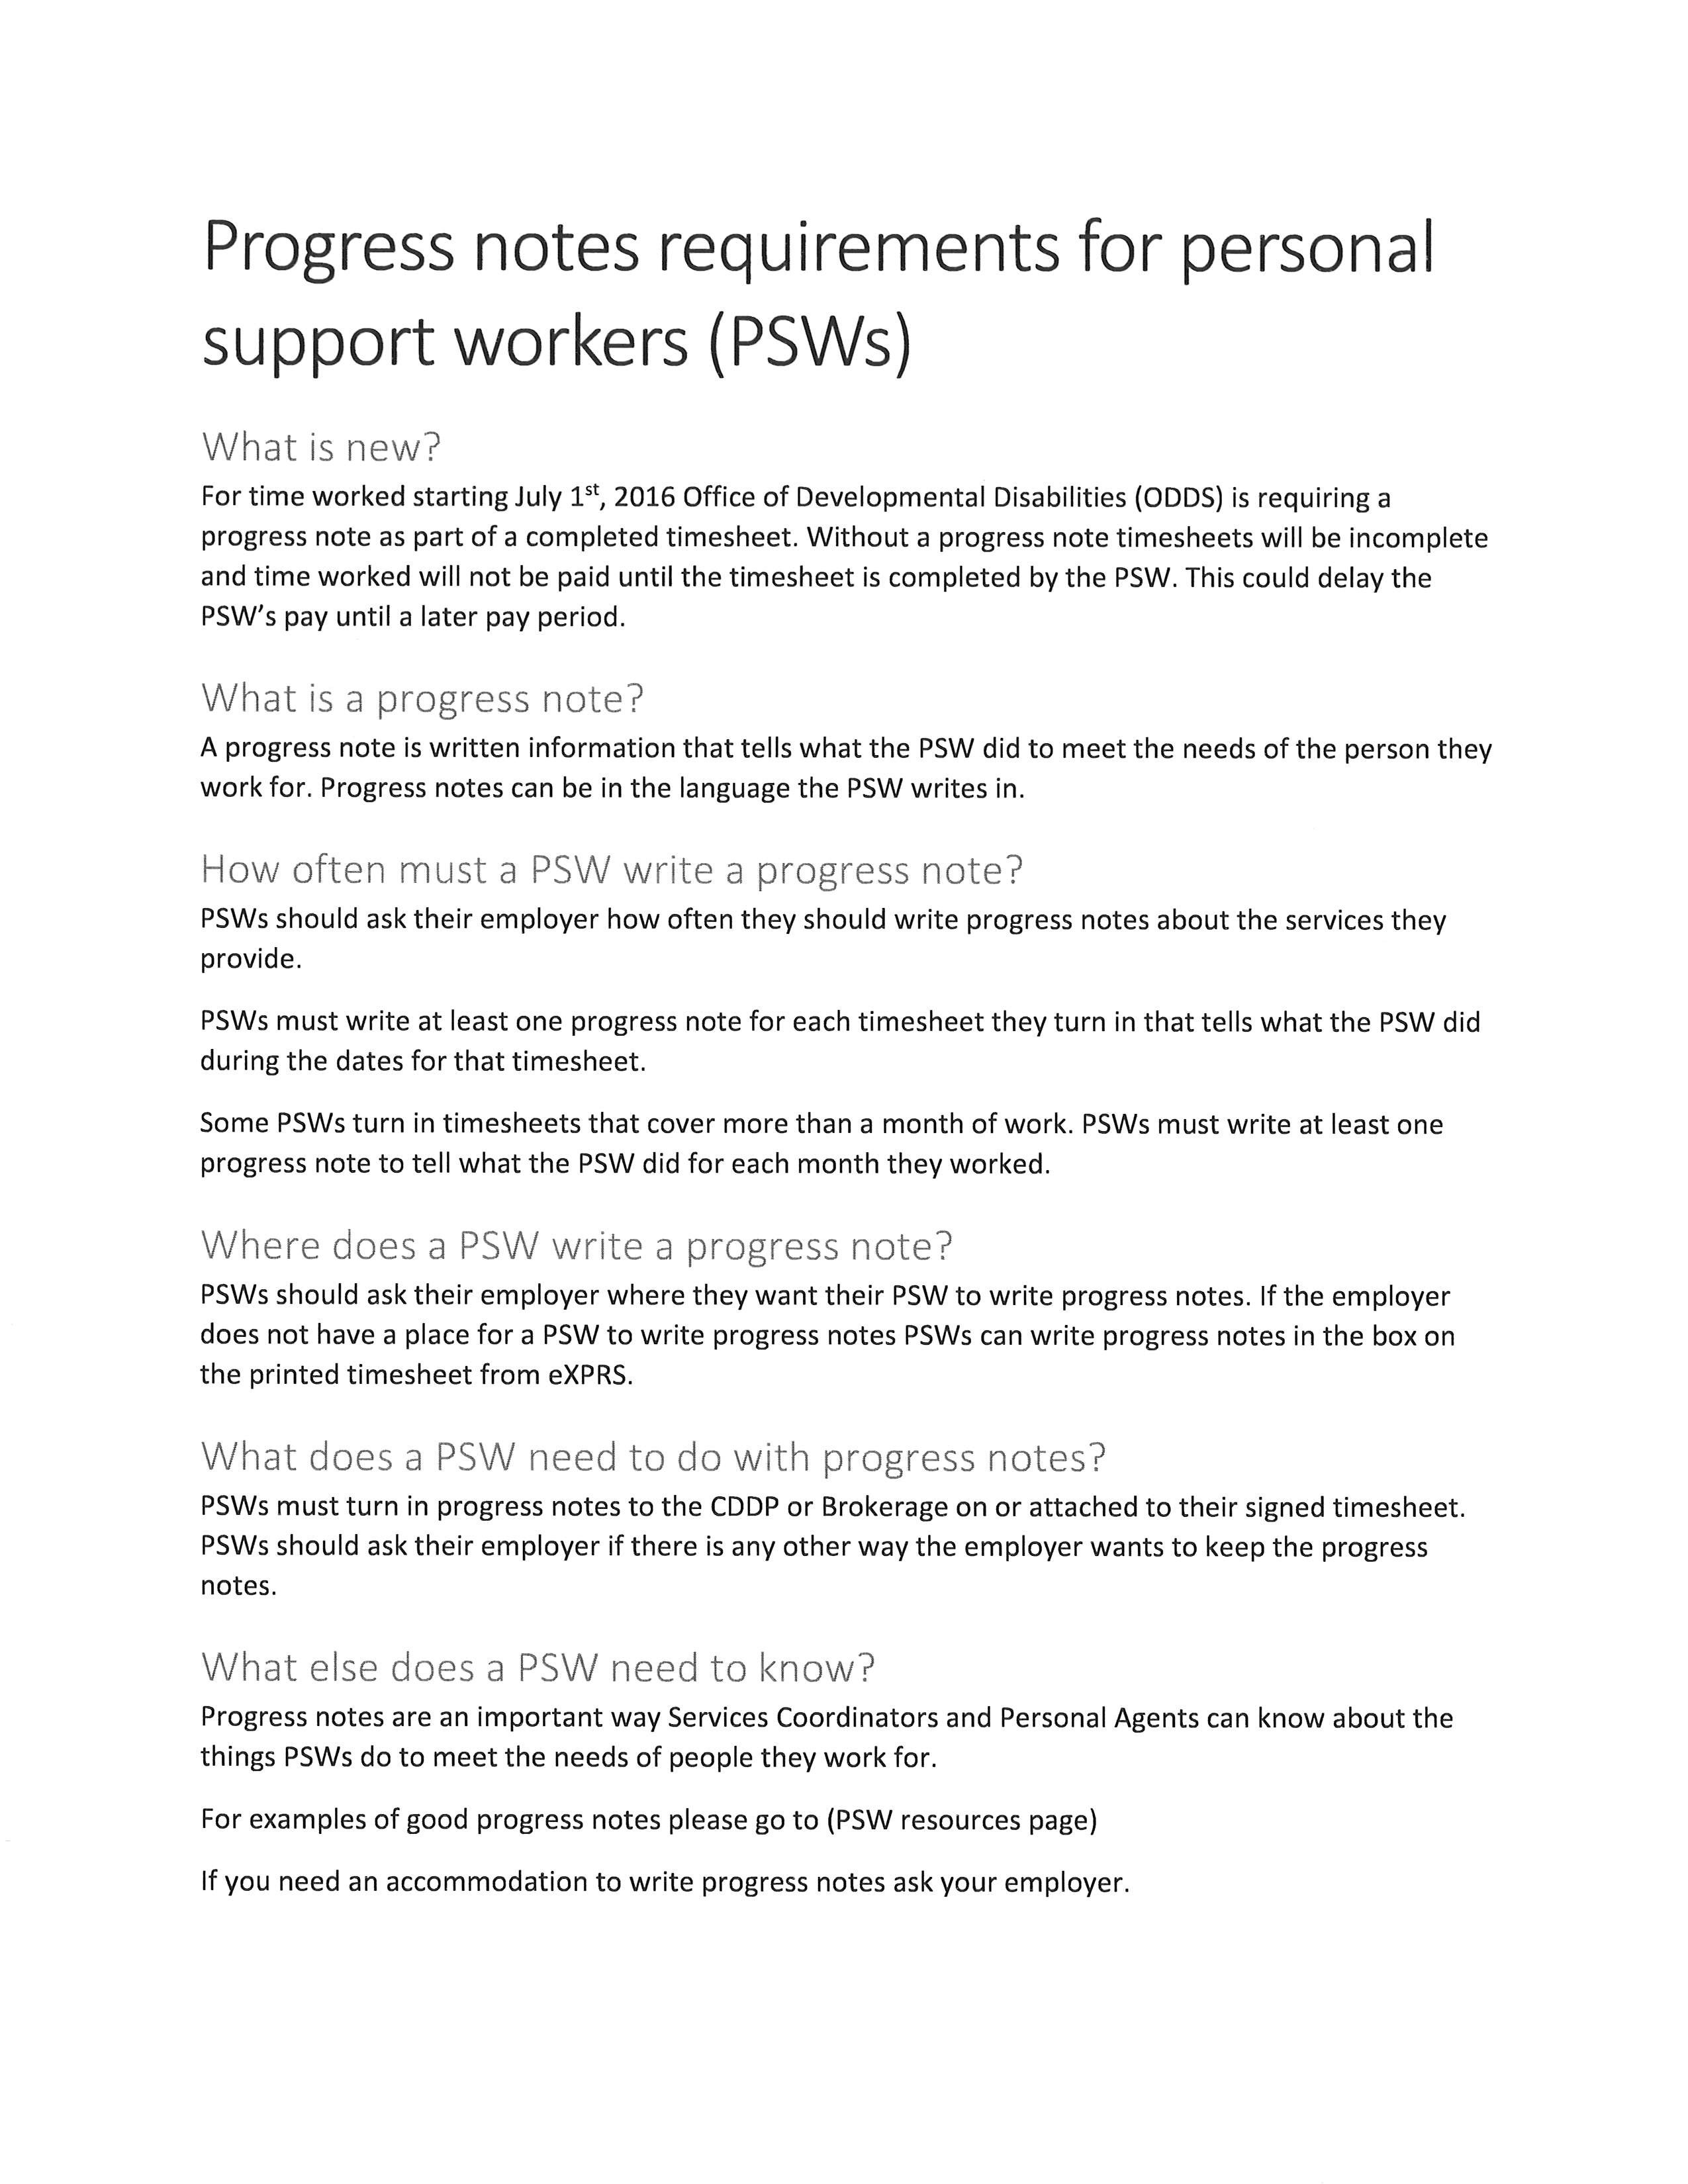 Progress Notes Toolkit: A Guide For Personal Support Workers Serving People  With Disabilities In Oregon